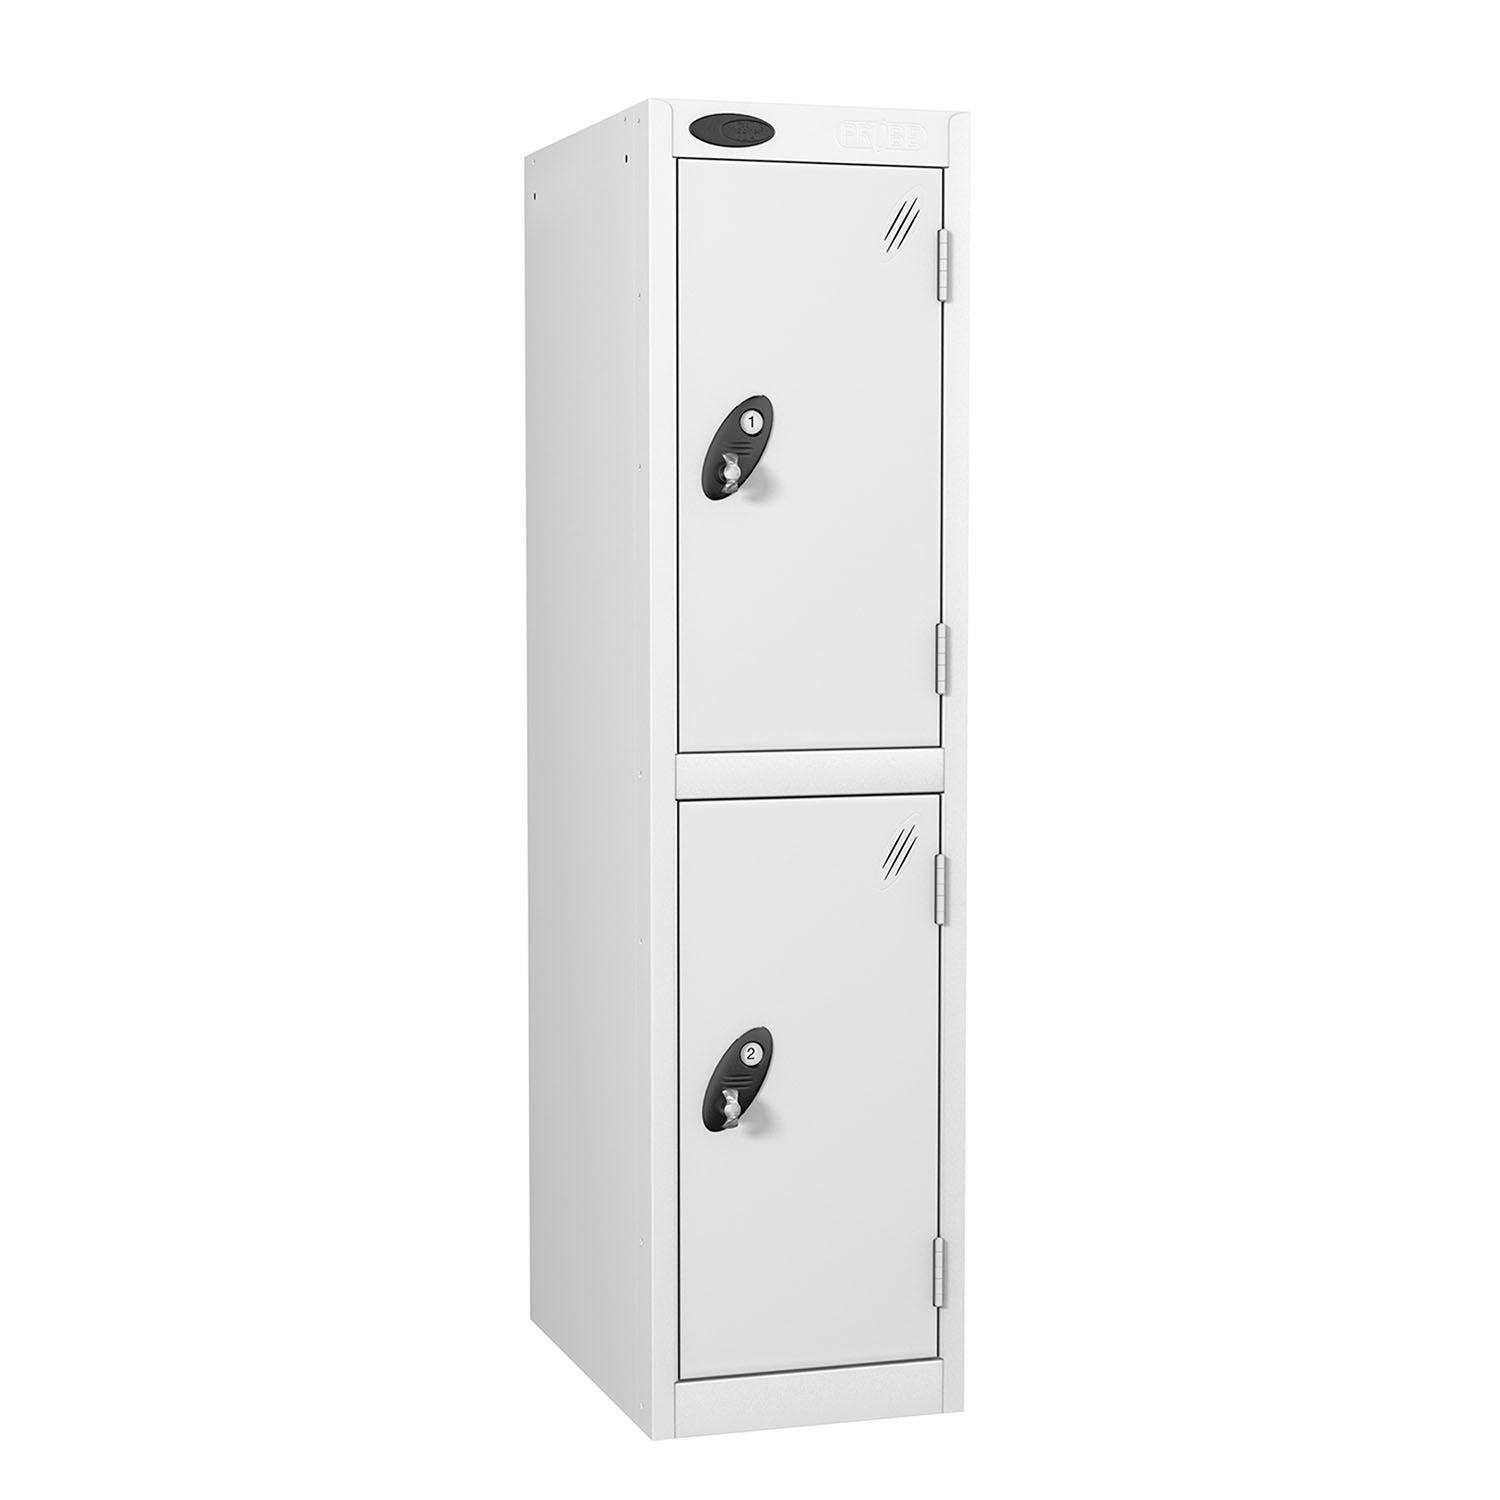 Probe 2 doors low locker in white colour